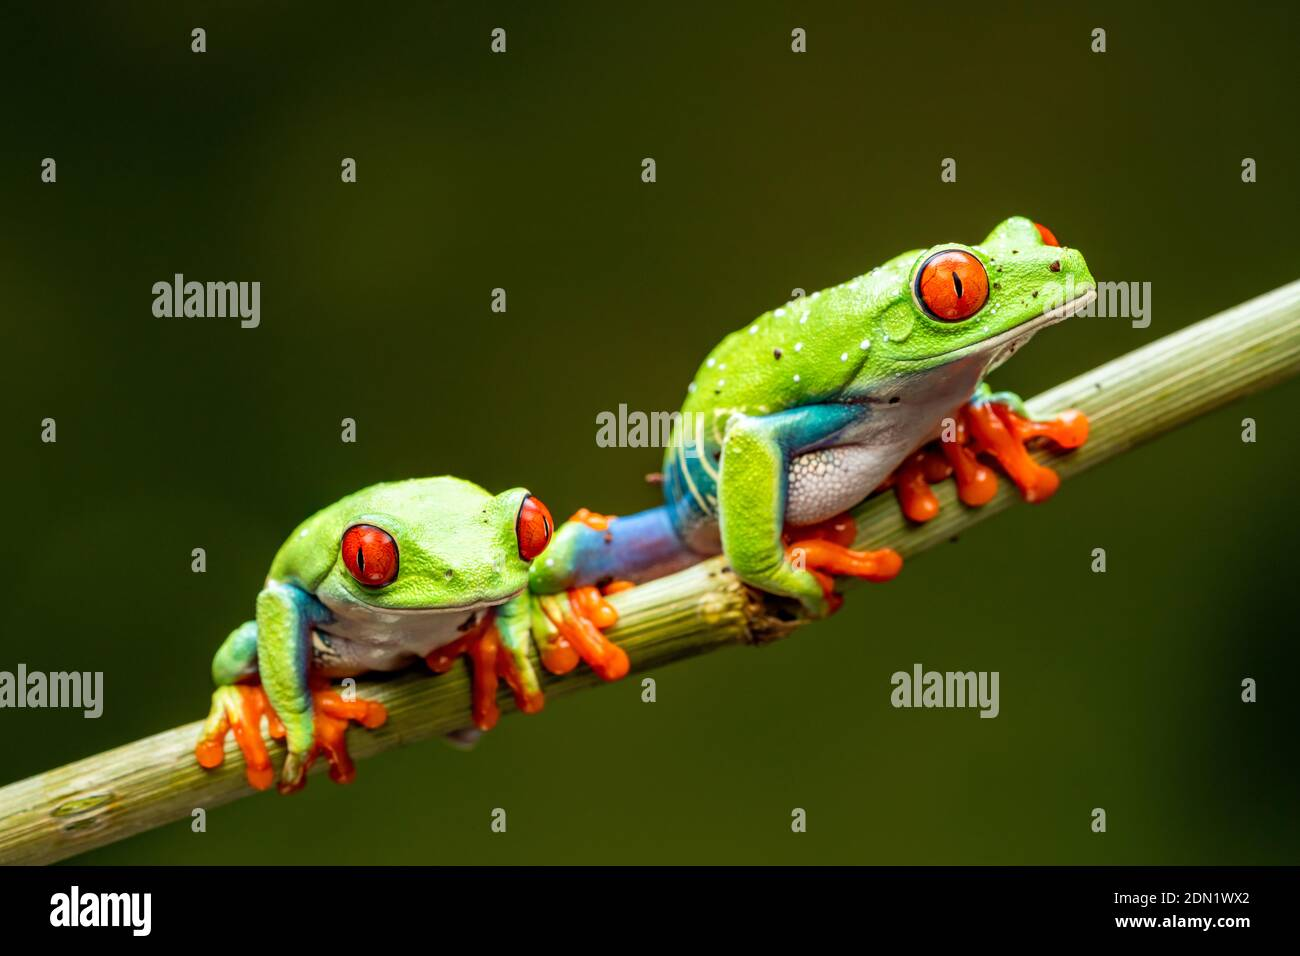 Red-eyed tree frogs (Agalychnis callidryas) - closeup with selective focus. Stock Photo